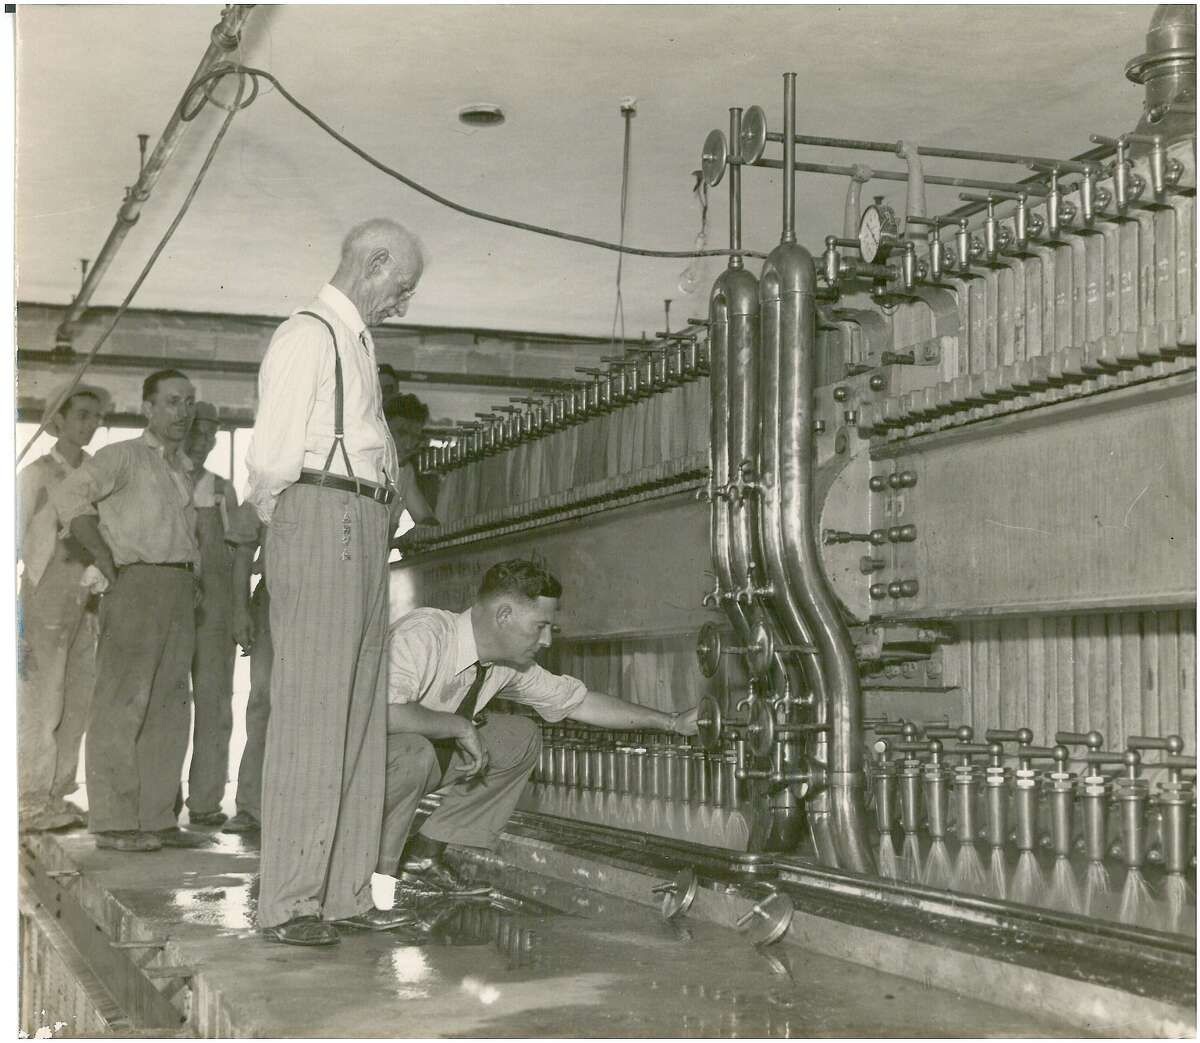 """Frantz Brogniez was given a free hand in designing the Grand Prize brewery for Gulf and lived long enough to oversee the first run of the bottling line. When he died two years later, his son Frantz P. Brogniez took over as brewmaster. Collection of Philip Brogniez. From """"Houston Beer: A Heady History of Brewing in the Bayou City"""" by Ronnie Crocker."""